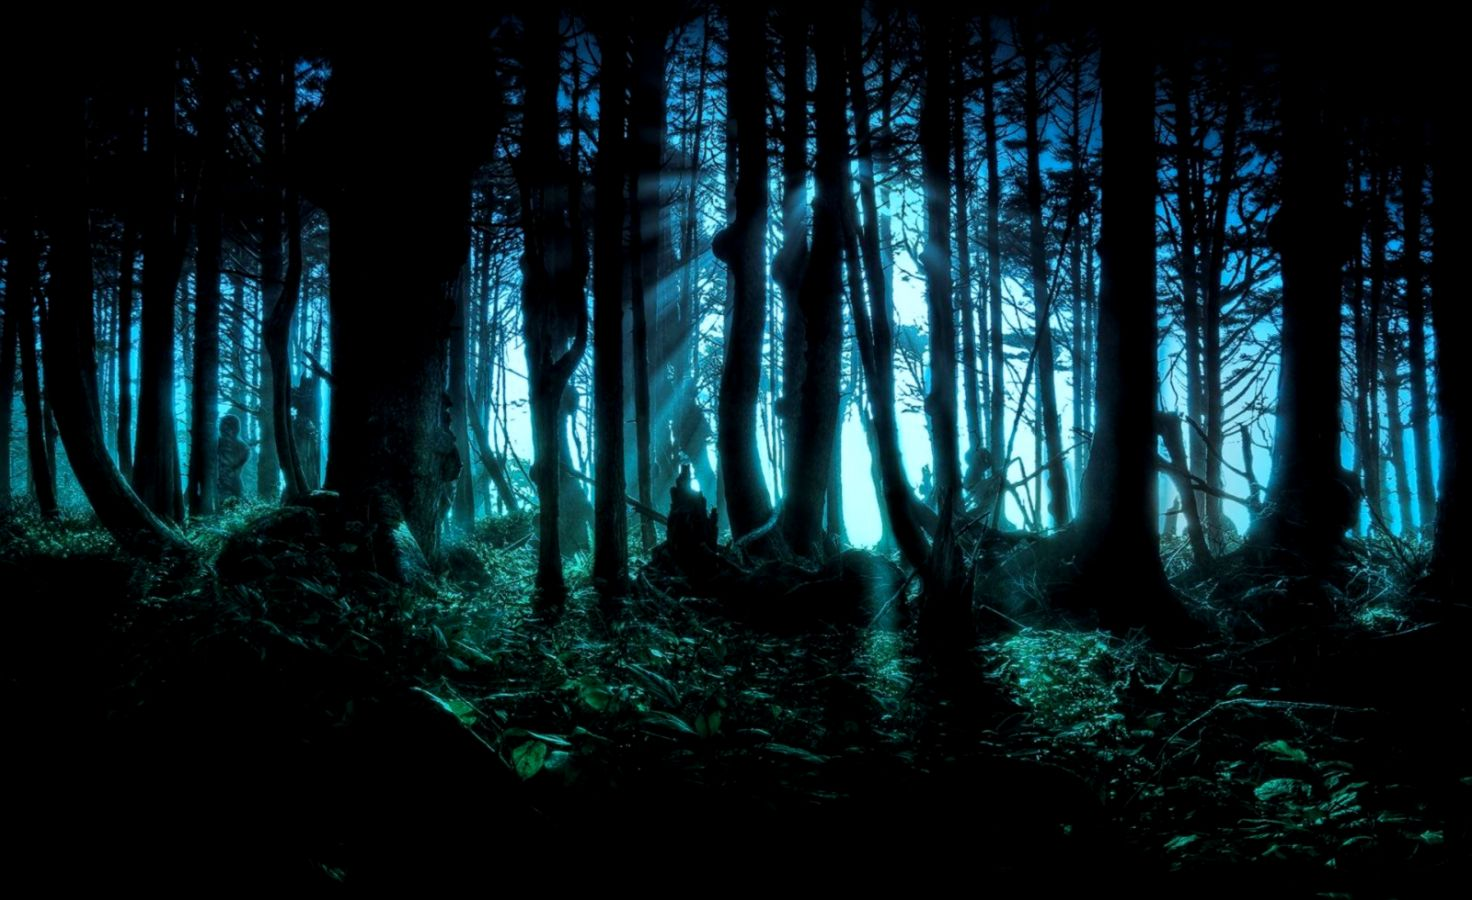 Dark Forest Wallpapers – Daily Backgrounds in HD